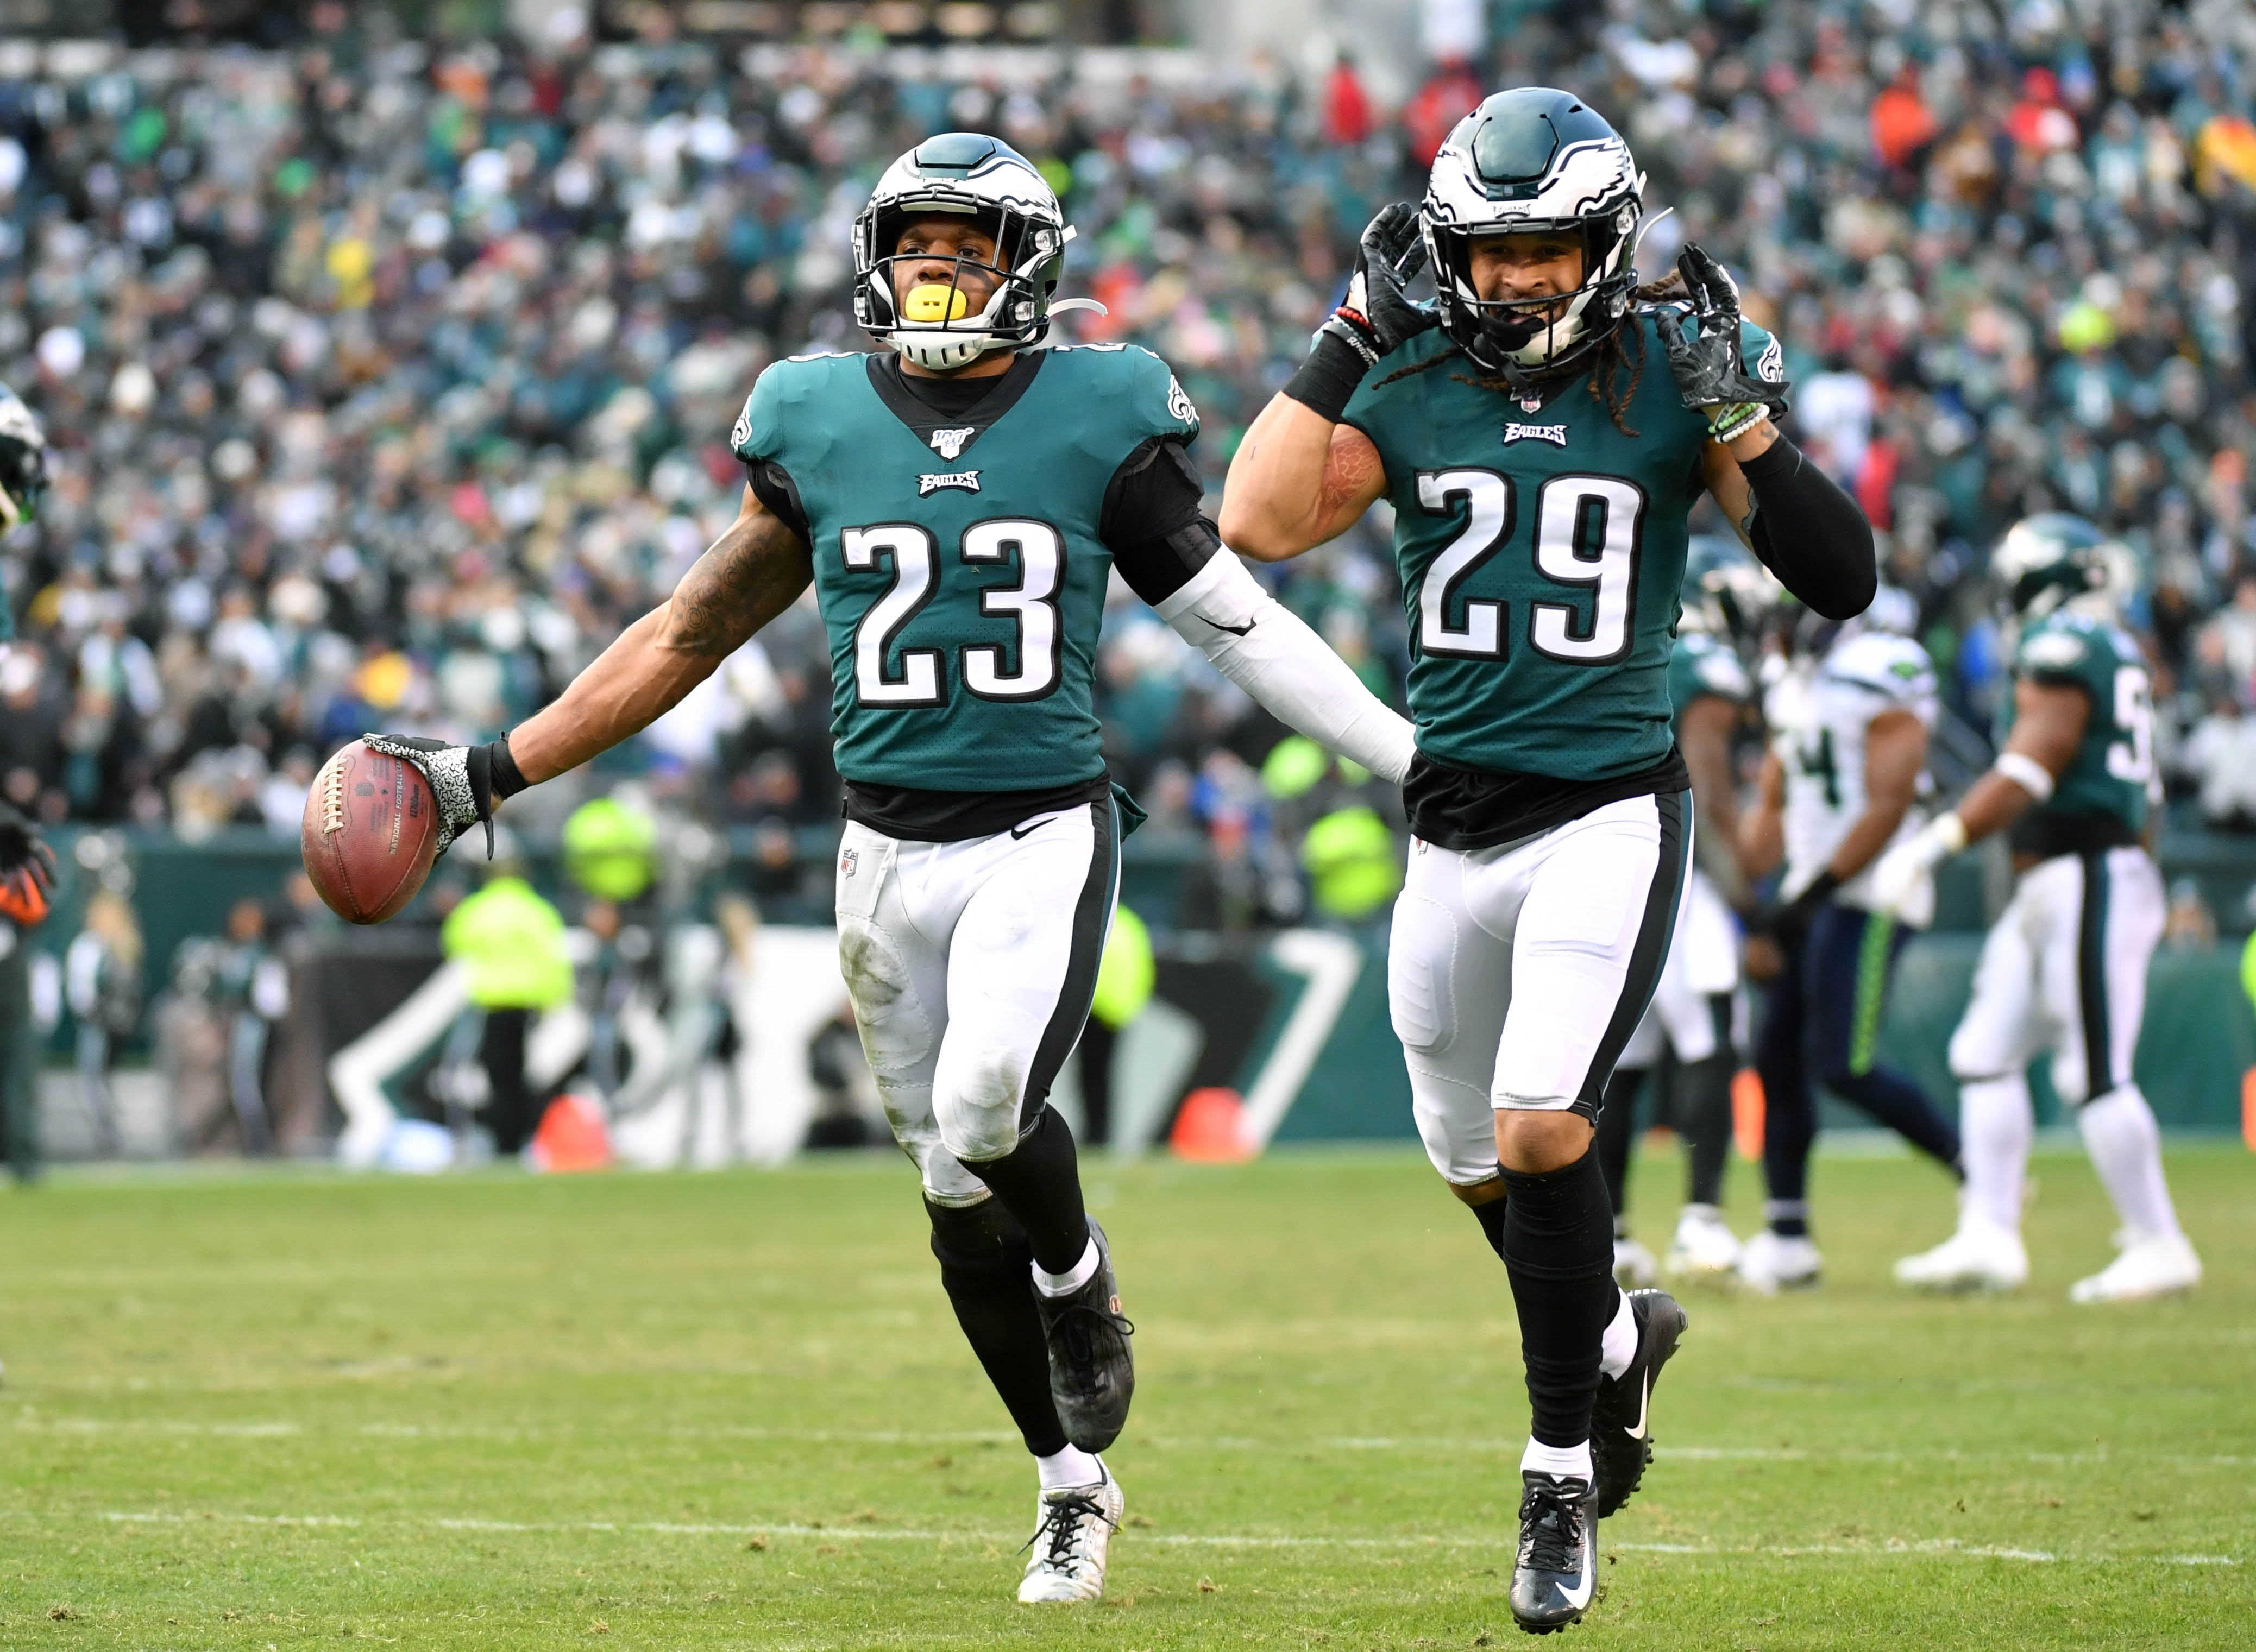 Report: Eagles re-sign Rodney McLeod to two-year deal